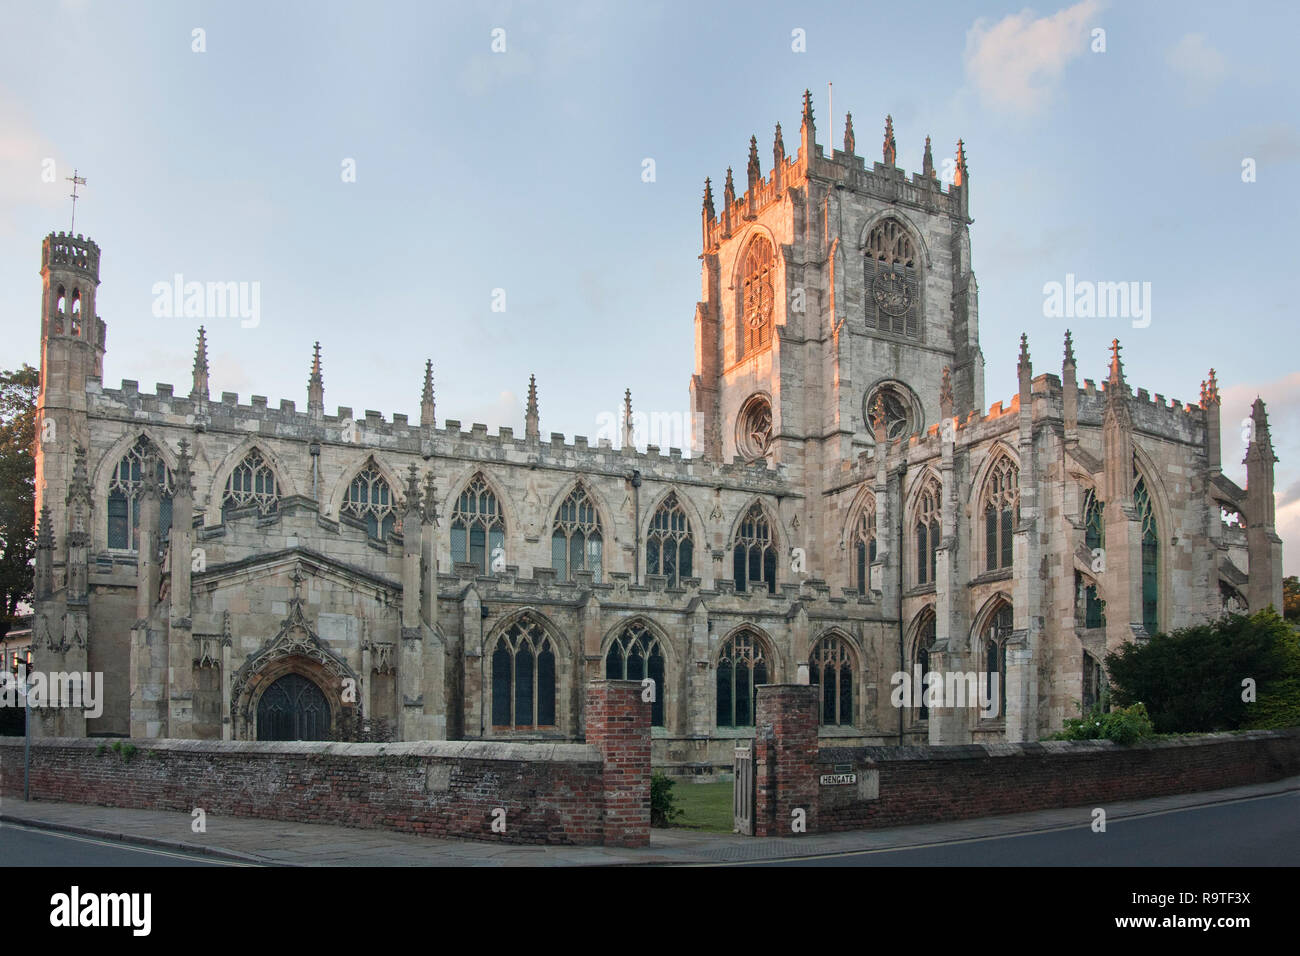 Beverley Minster in Beverley, East Riding of Yorkshire, a gothic parish Church of England. It is one of the largest parish churches in the UK - Stock Image